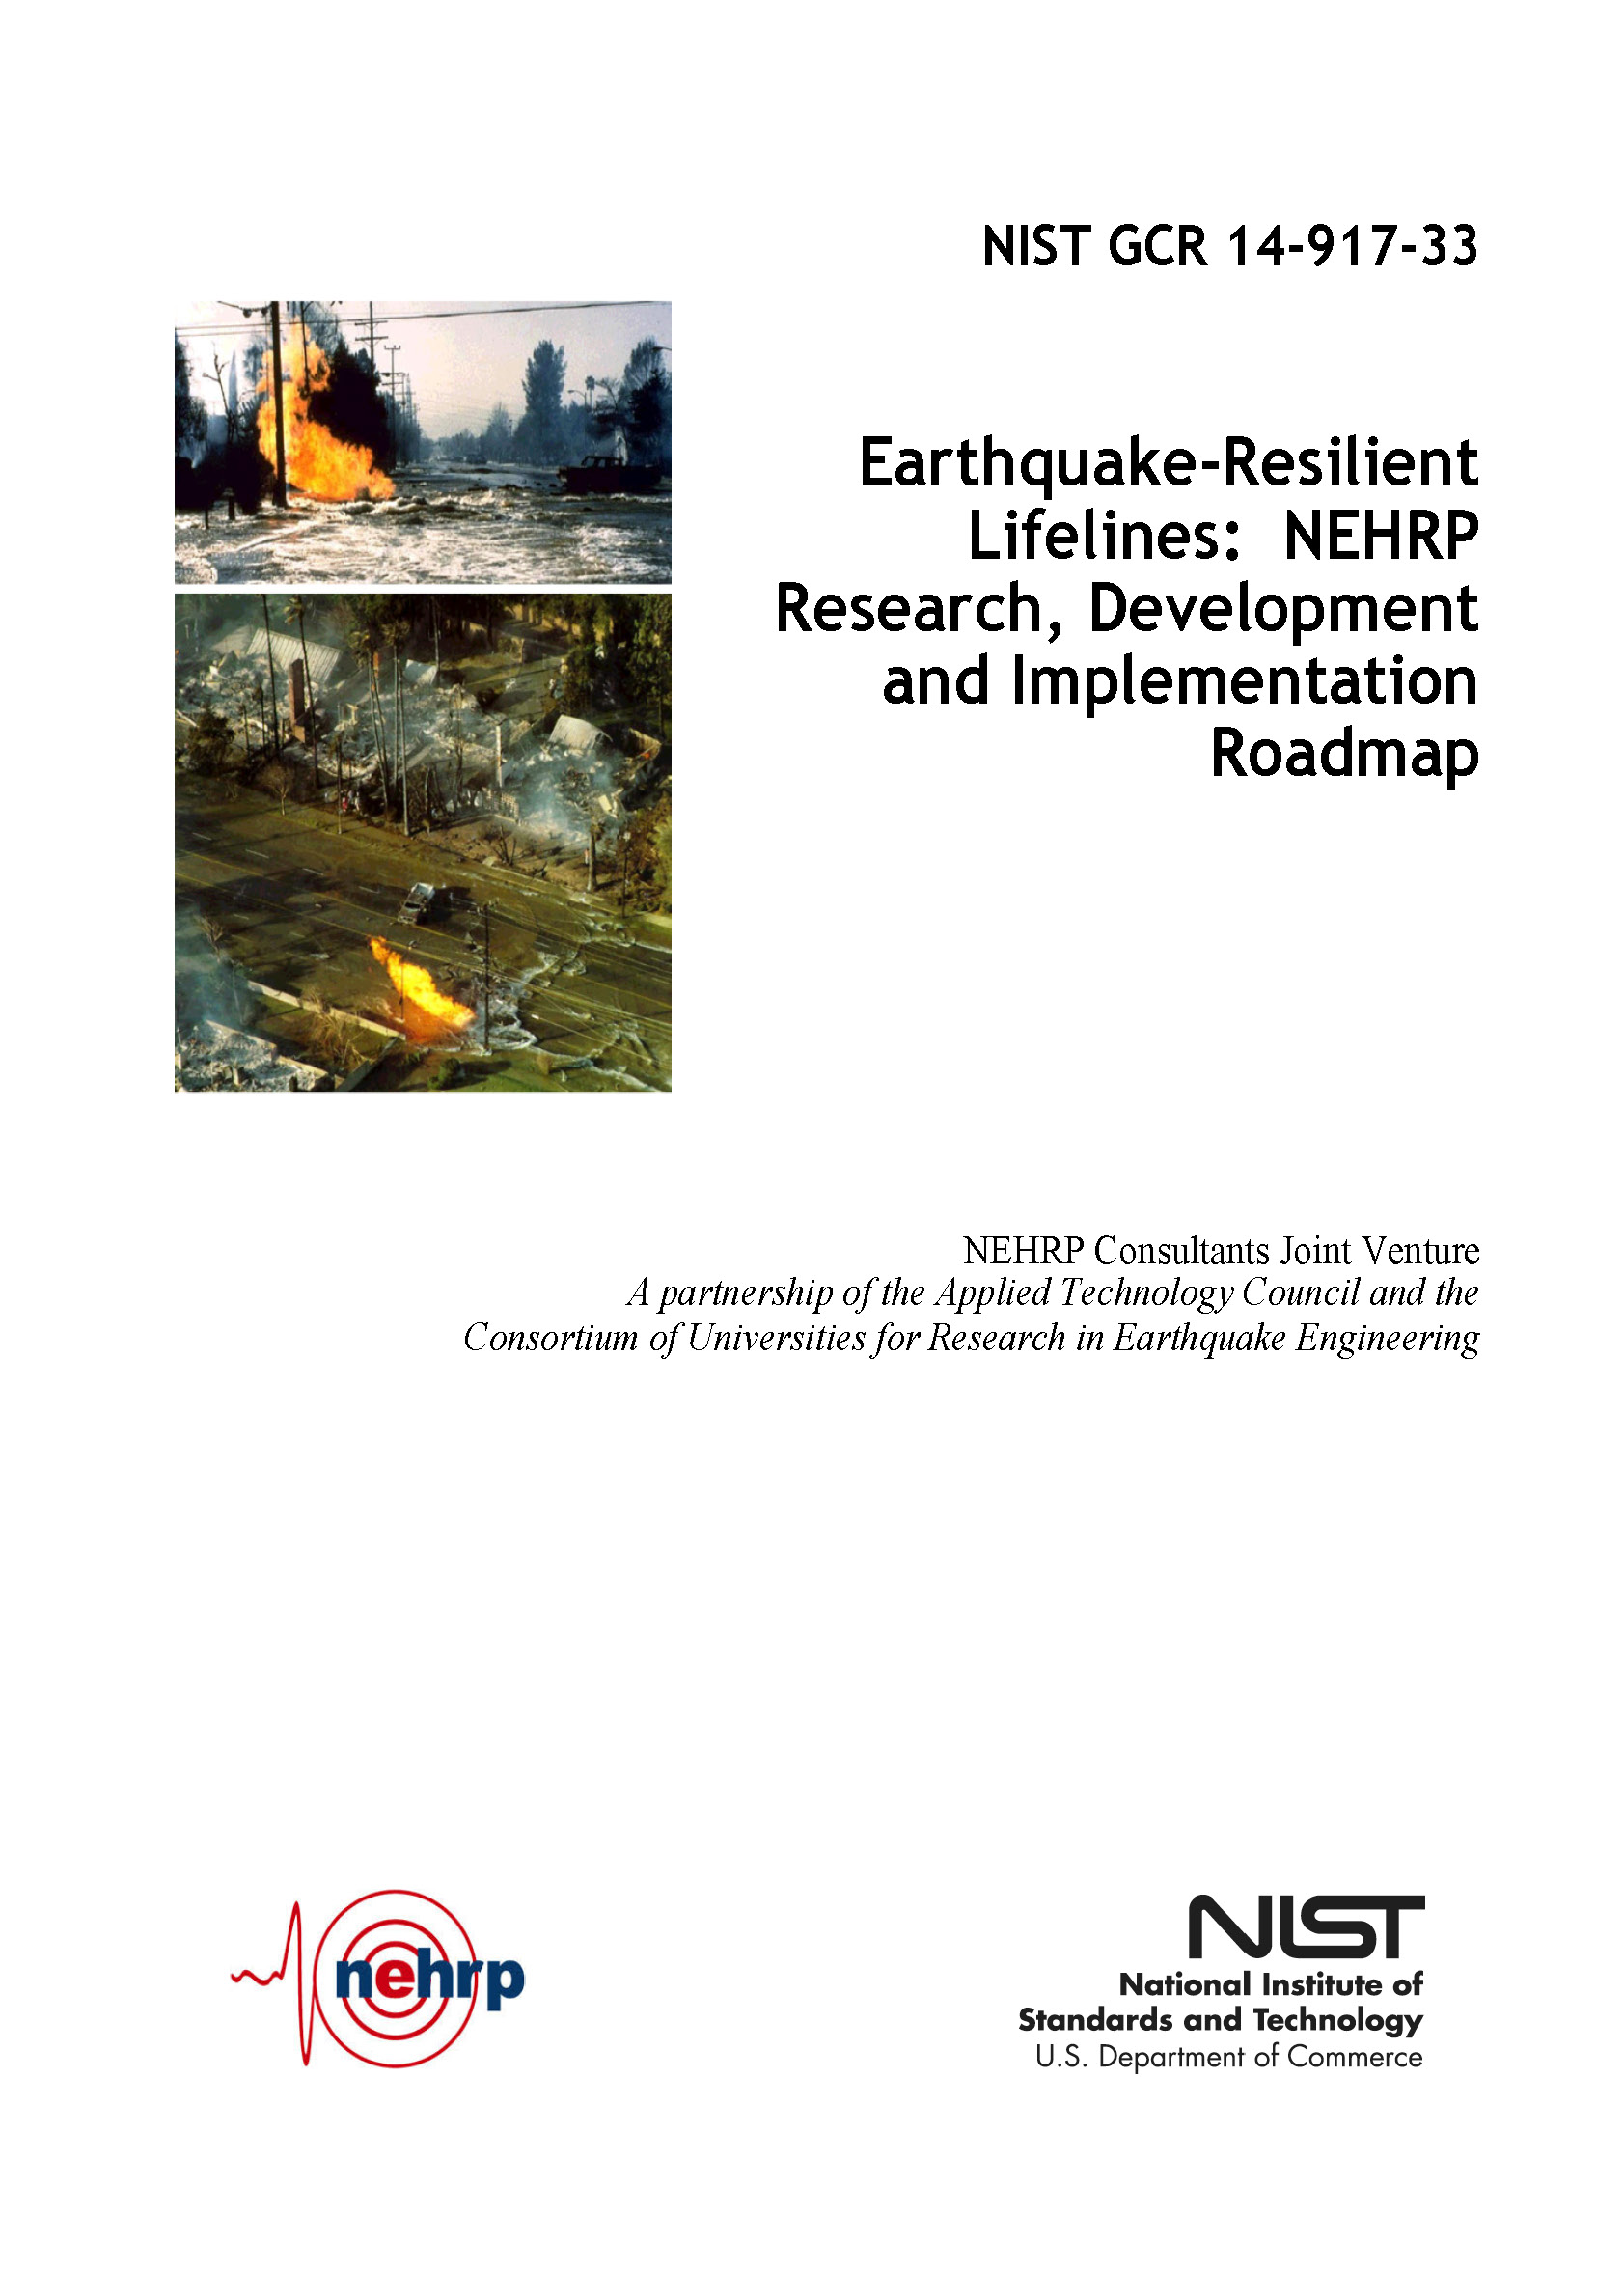 Publications :: Earthquake-Resilient Lifelines: NEHRP Research